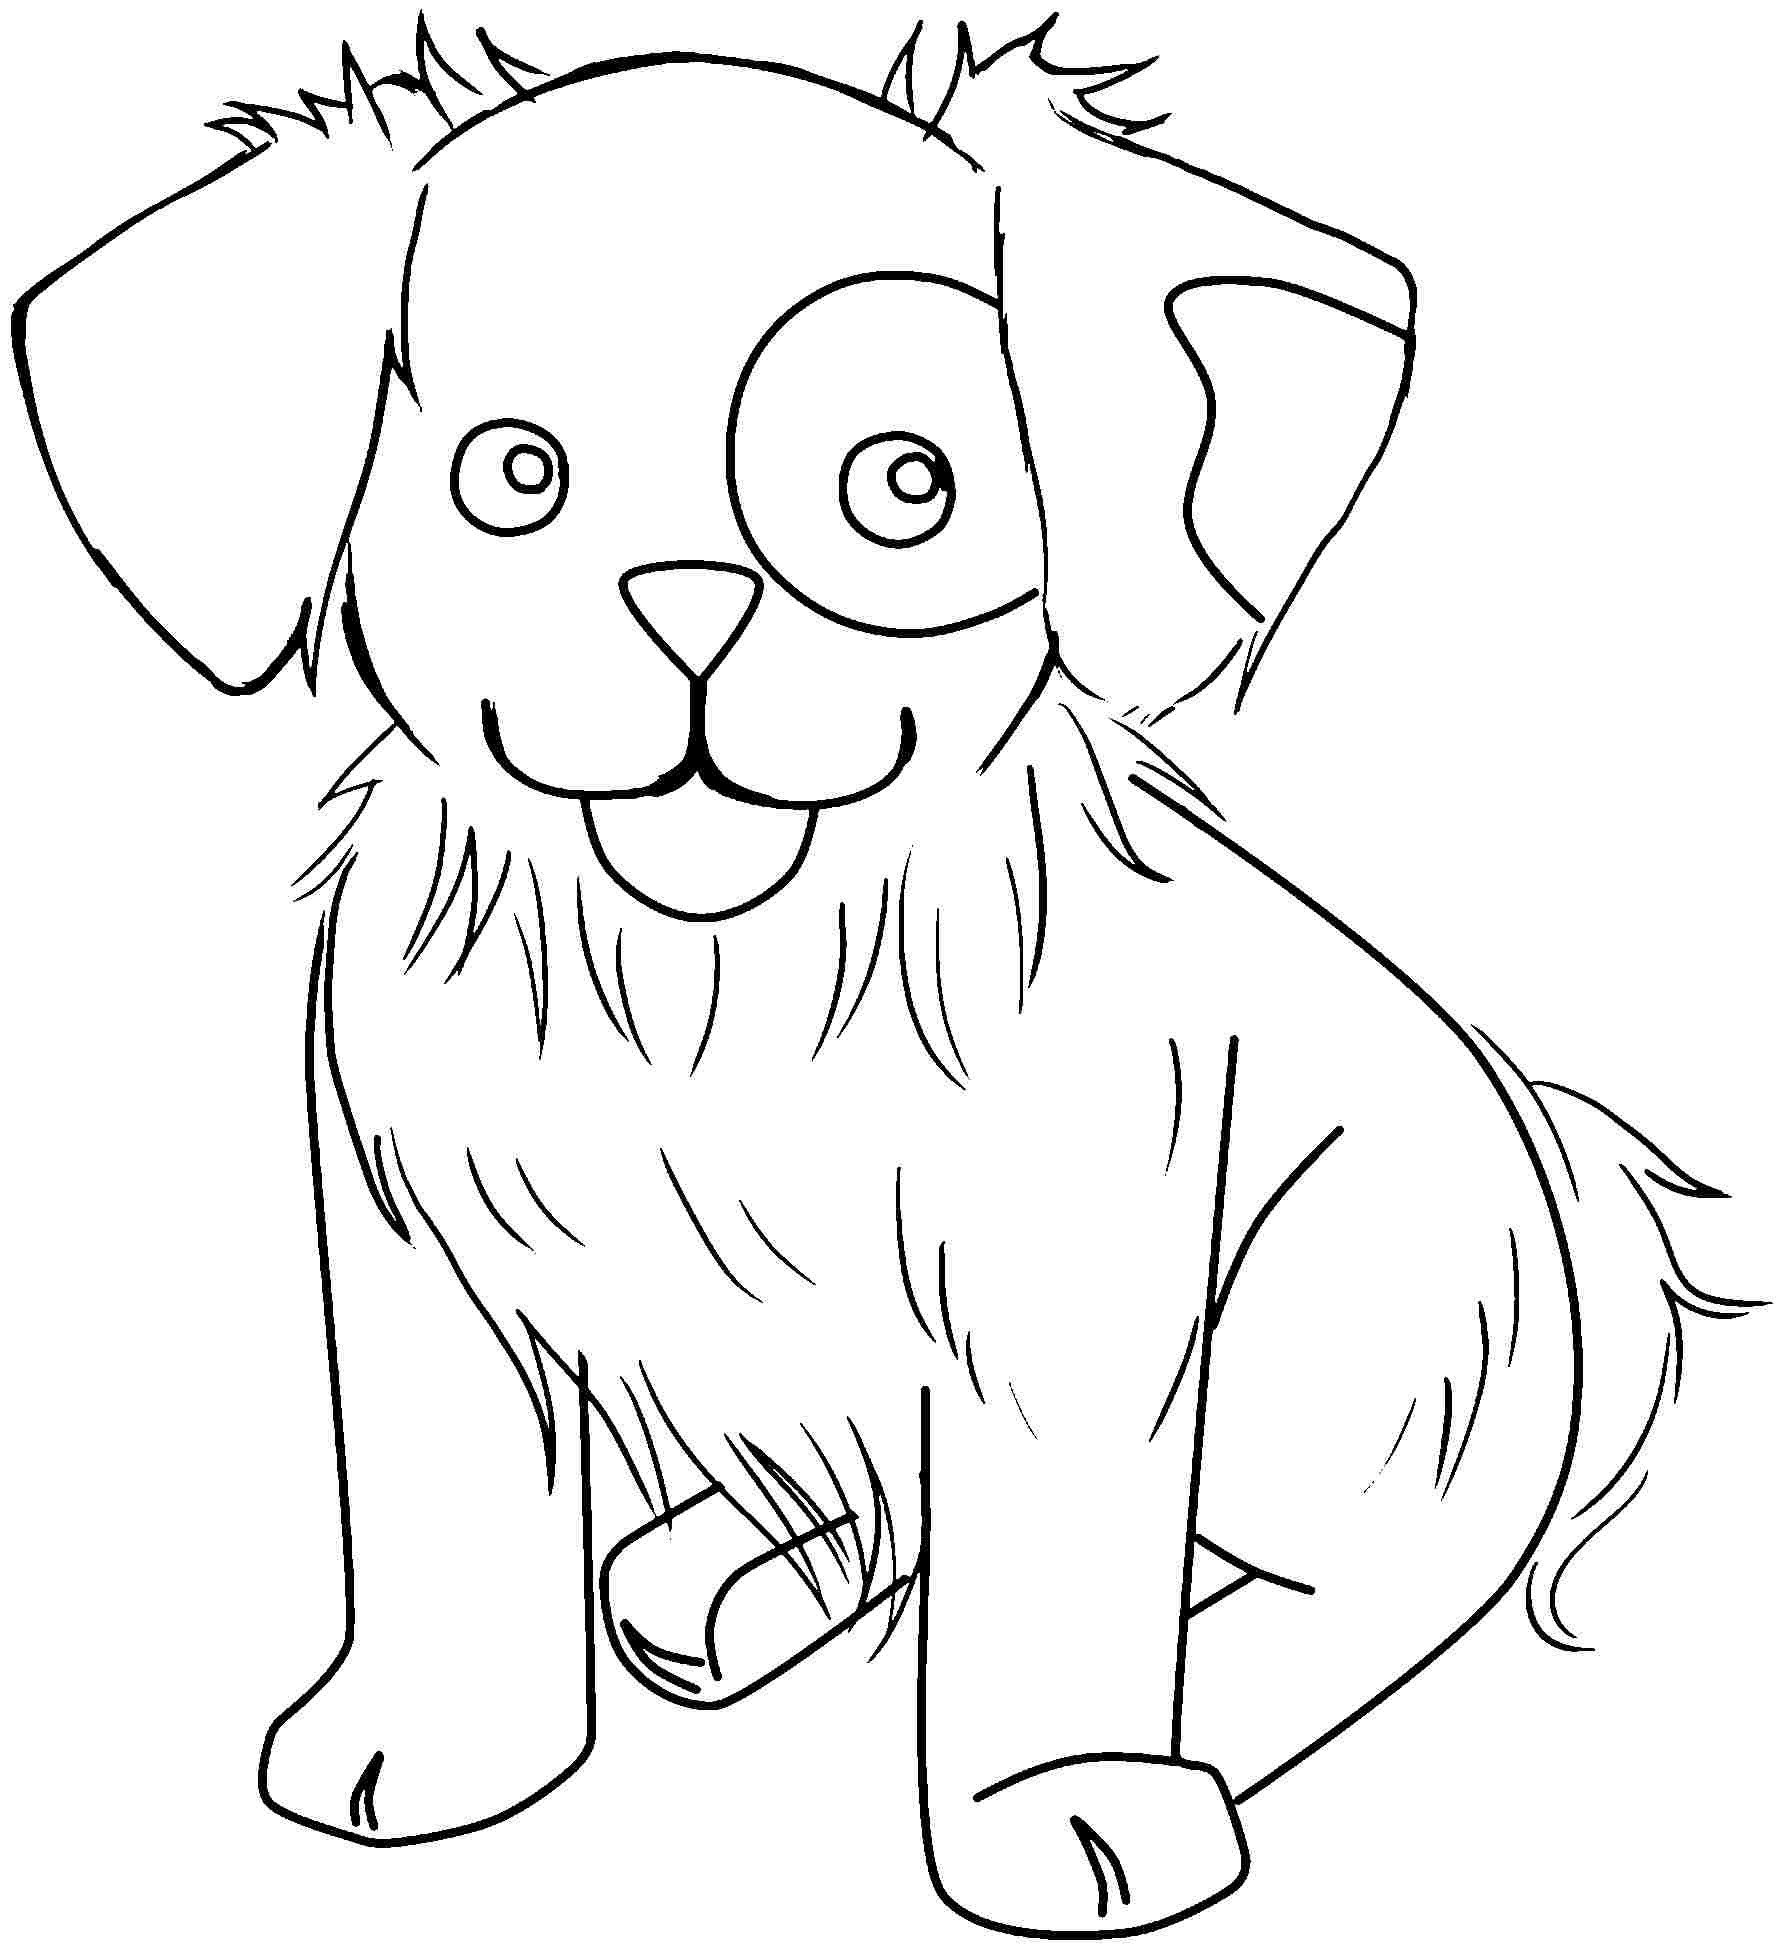 Free Coloring Pages Animals | Topsailmultimedia - Free Coloring Pages Animals Printable